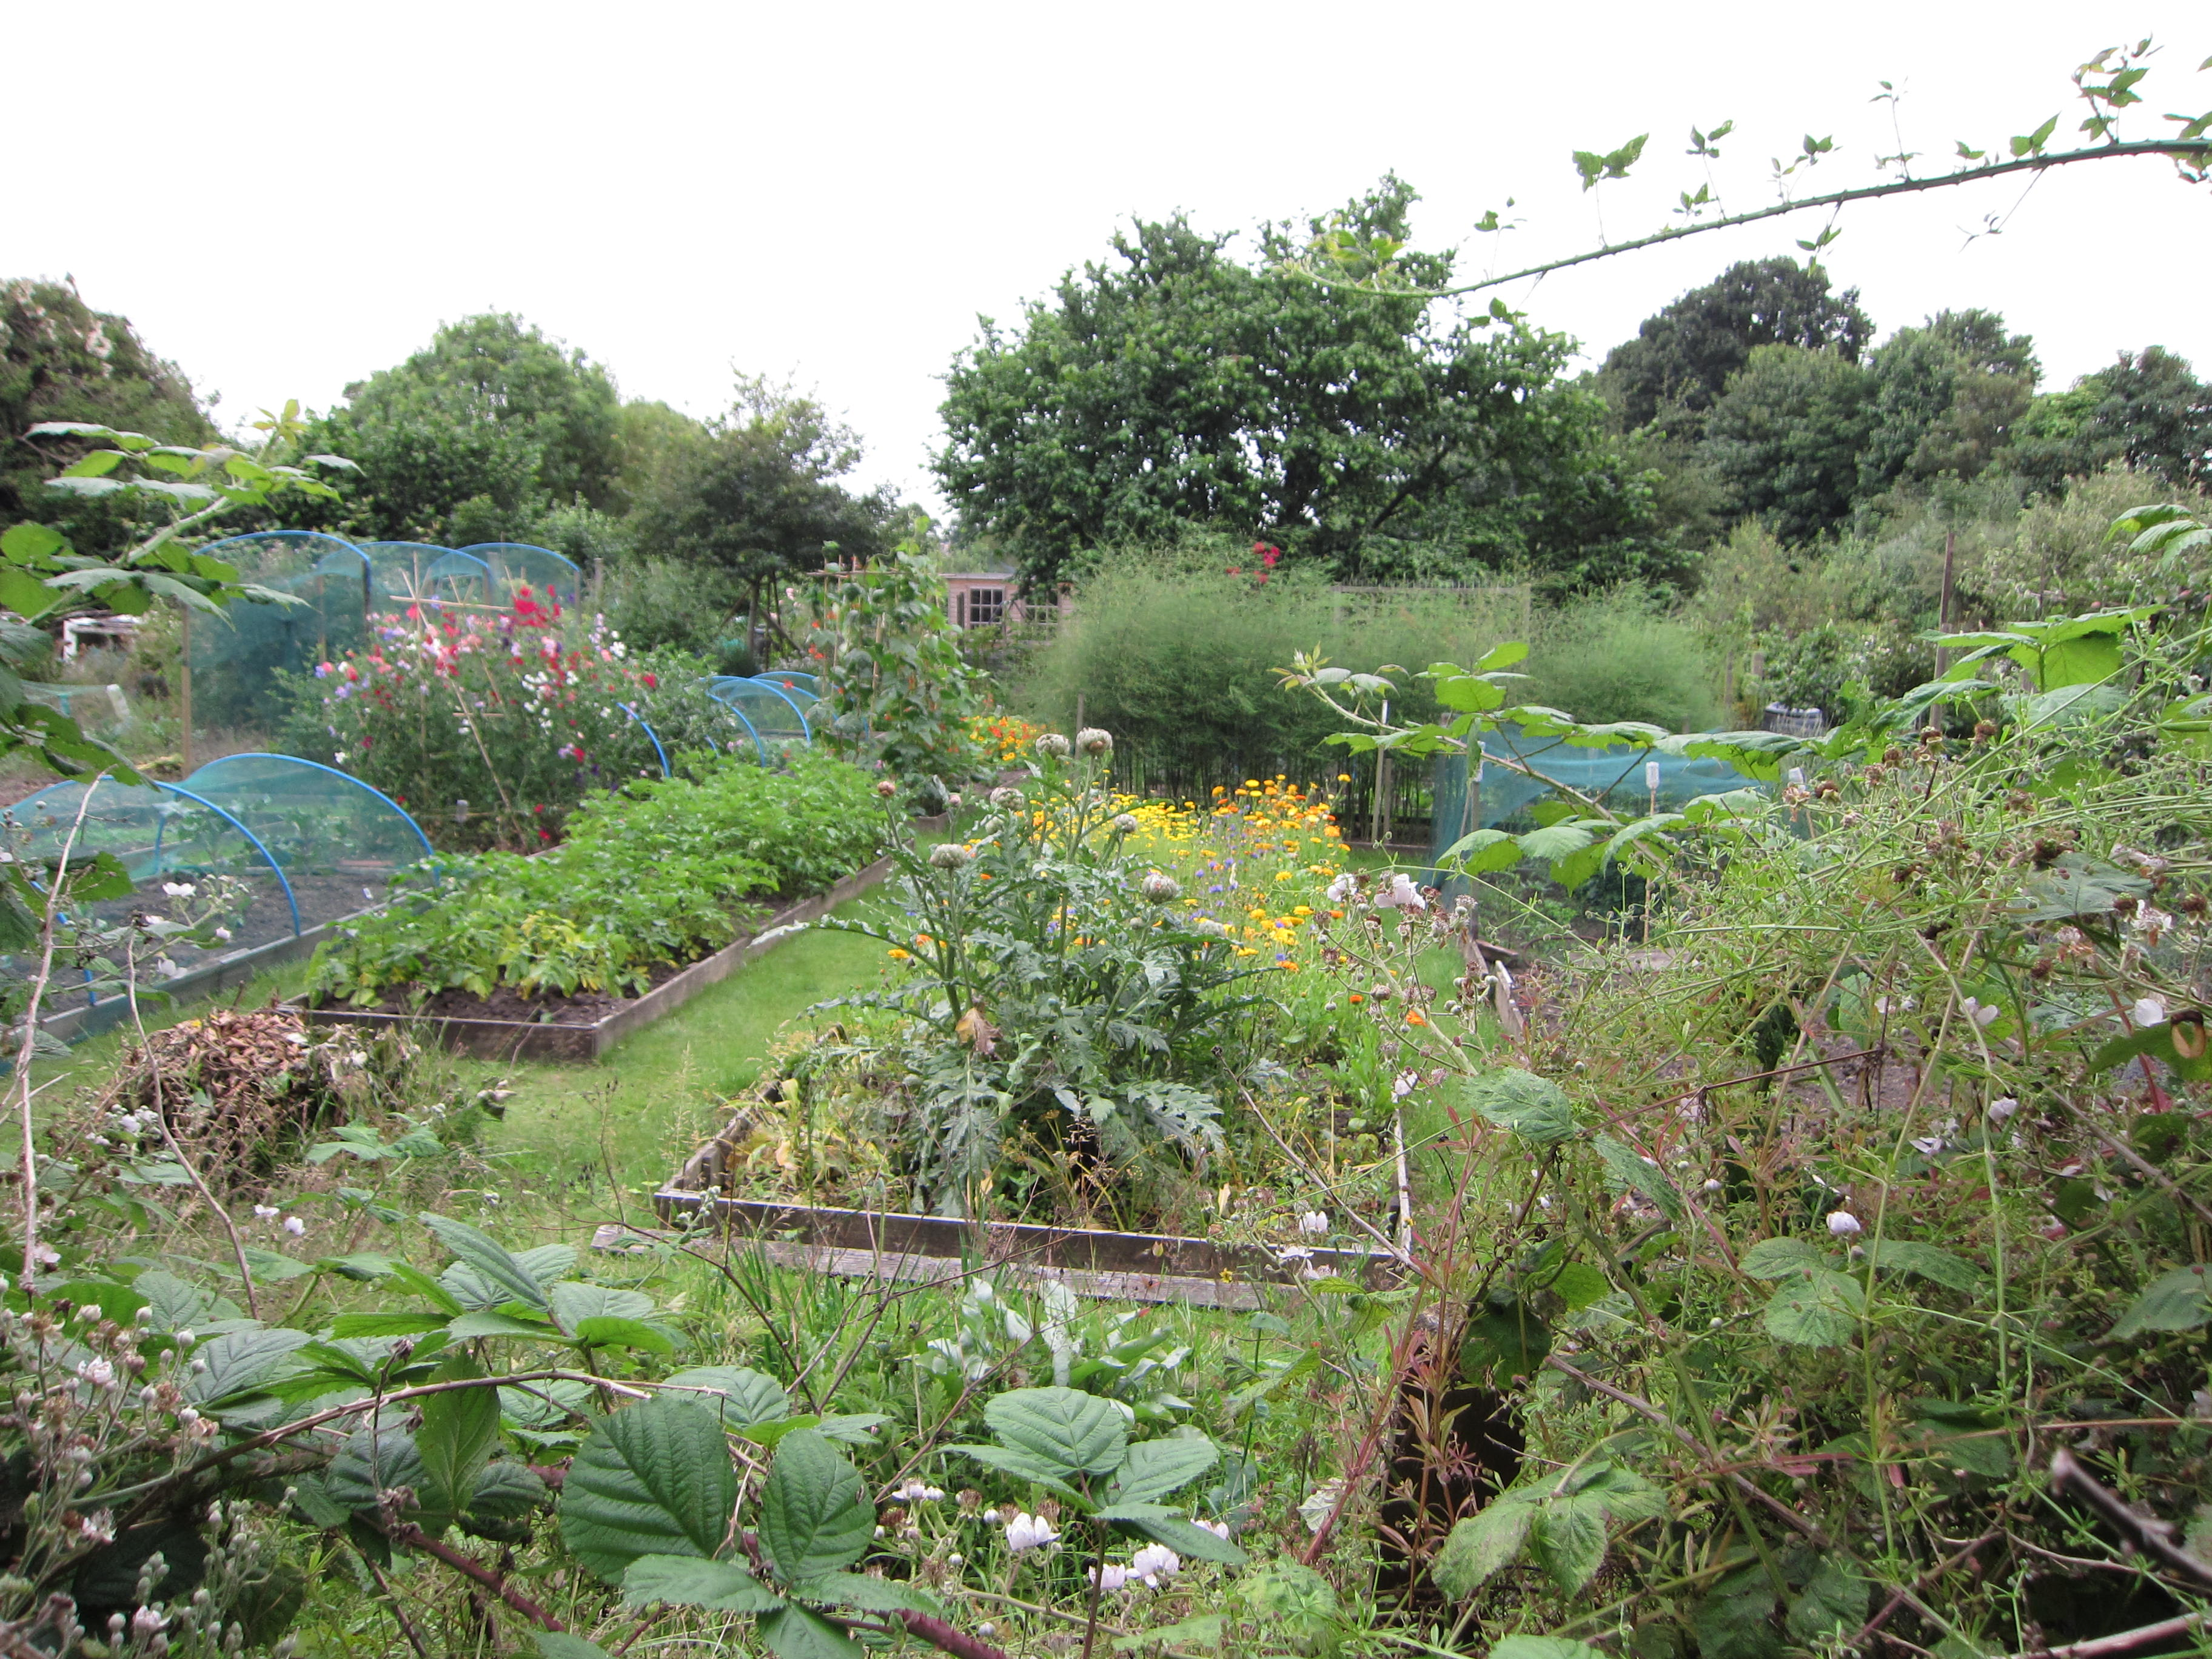 Large plots with raised beds (or not), filled with berries, potatoes, marigolds and more.